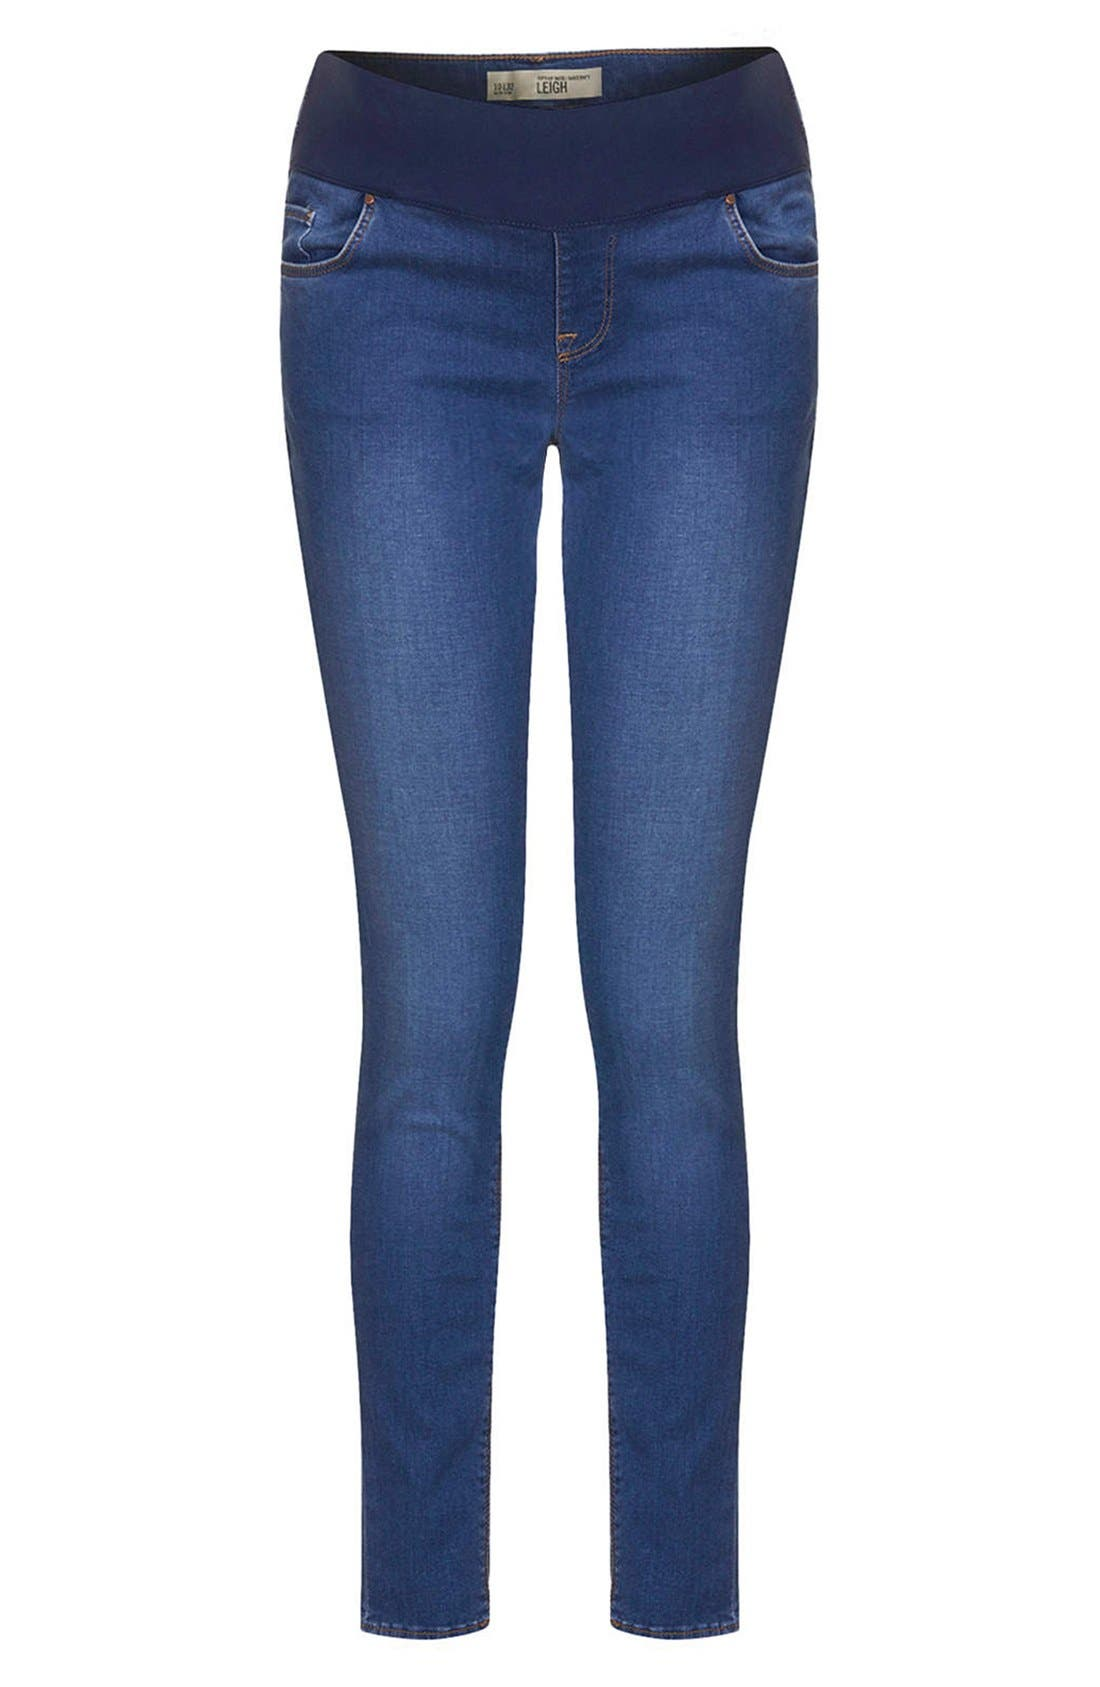 Alternate Image 3  - Topshop 'Leigh' Maternity Skinny Jeans (Regular and Short)